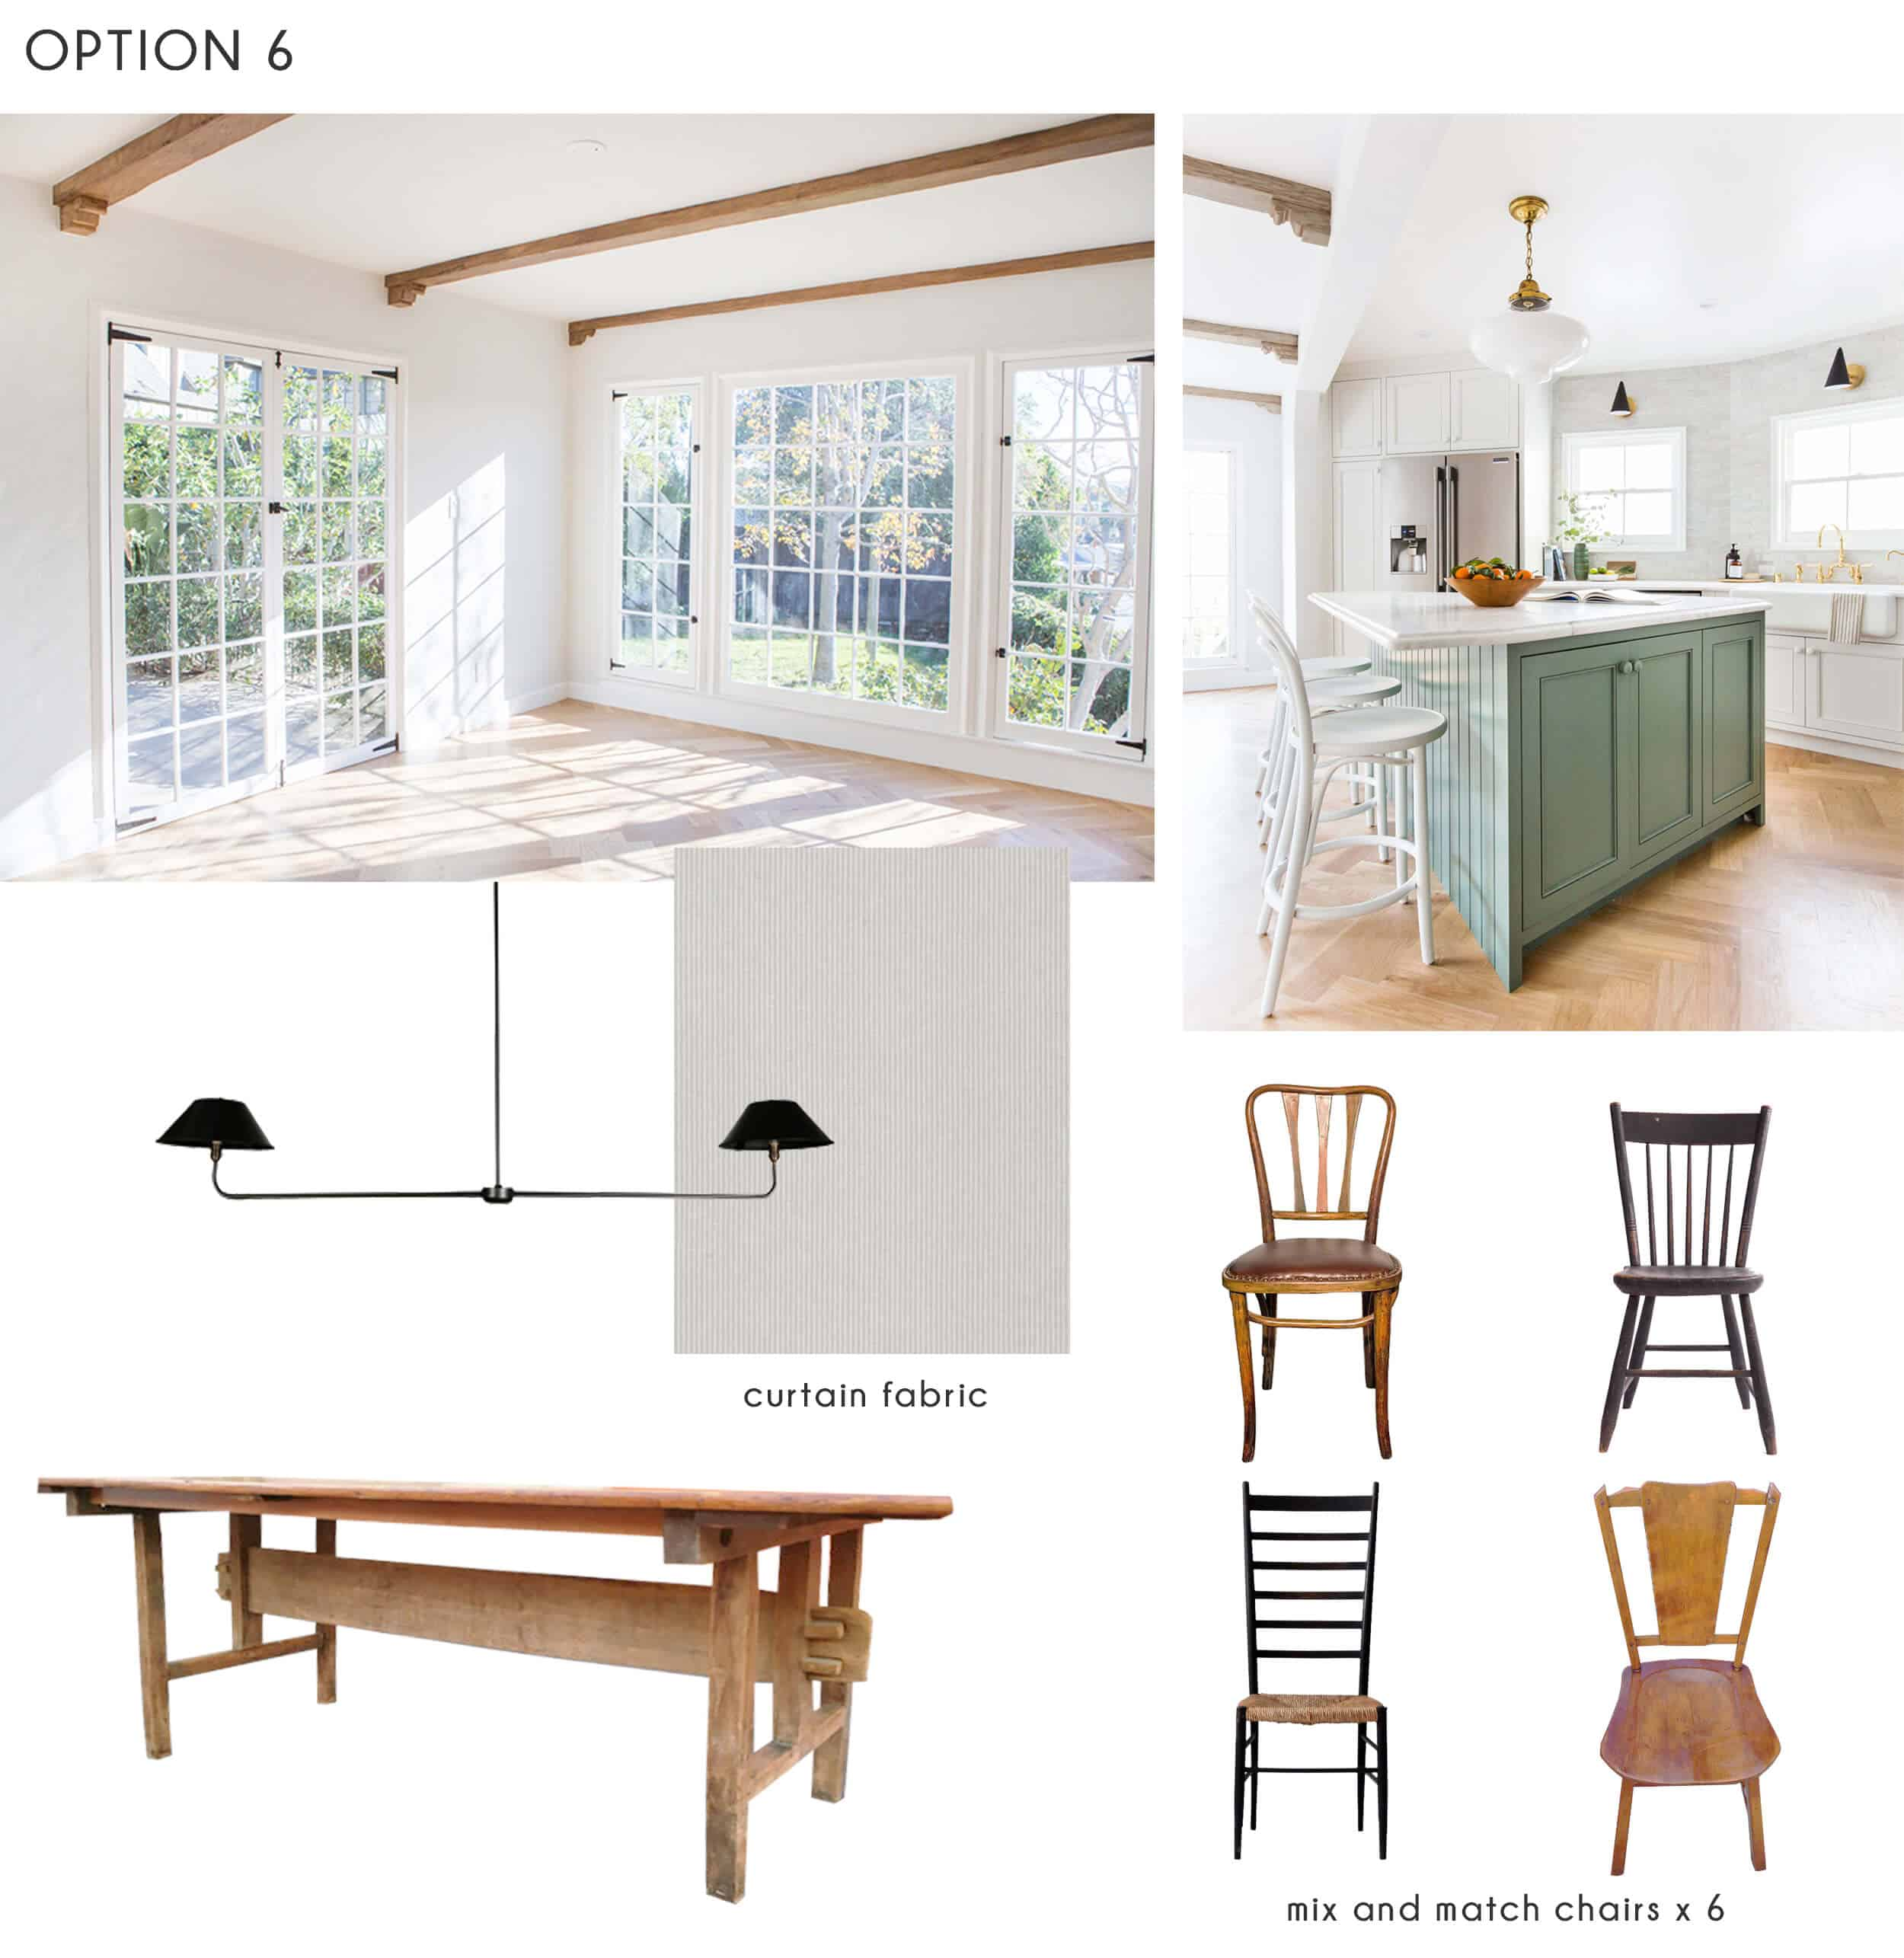 Emily Henderson_Ask the Audience_Dining Room_Chairs_Table_Option 6